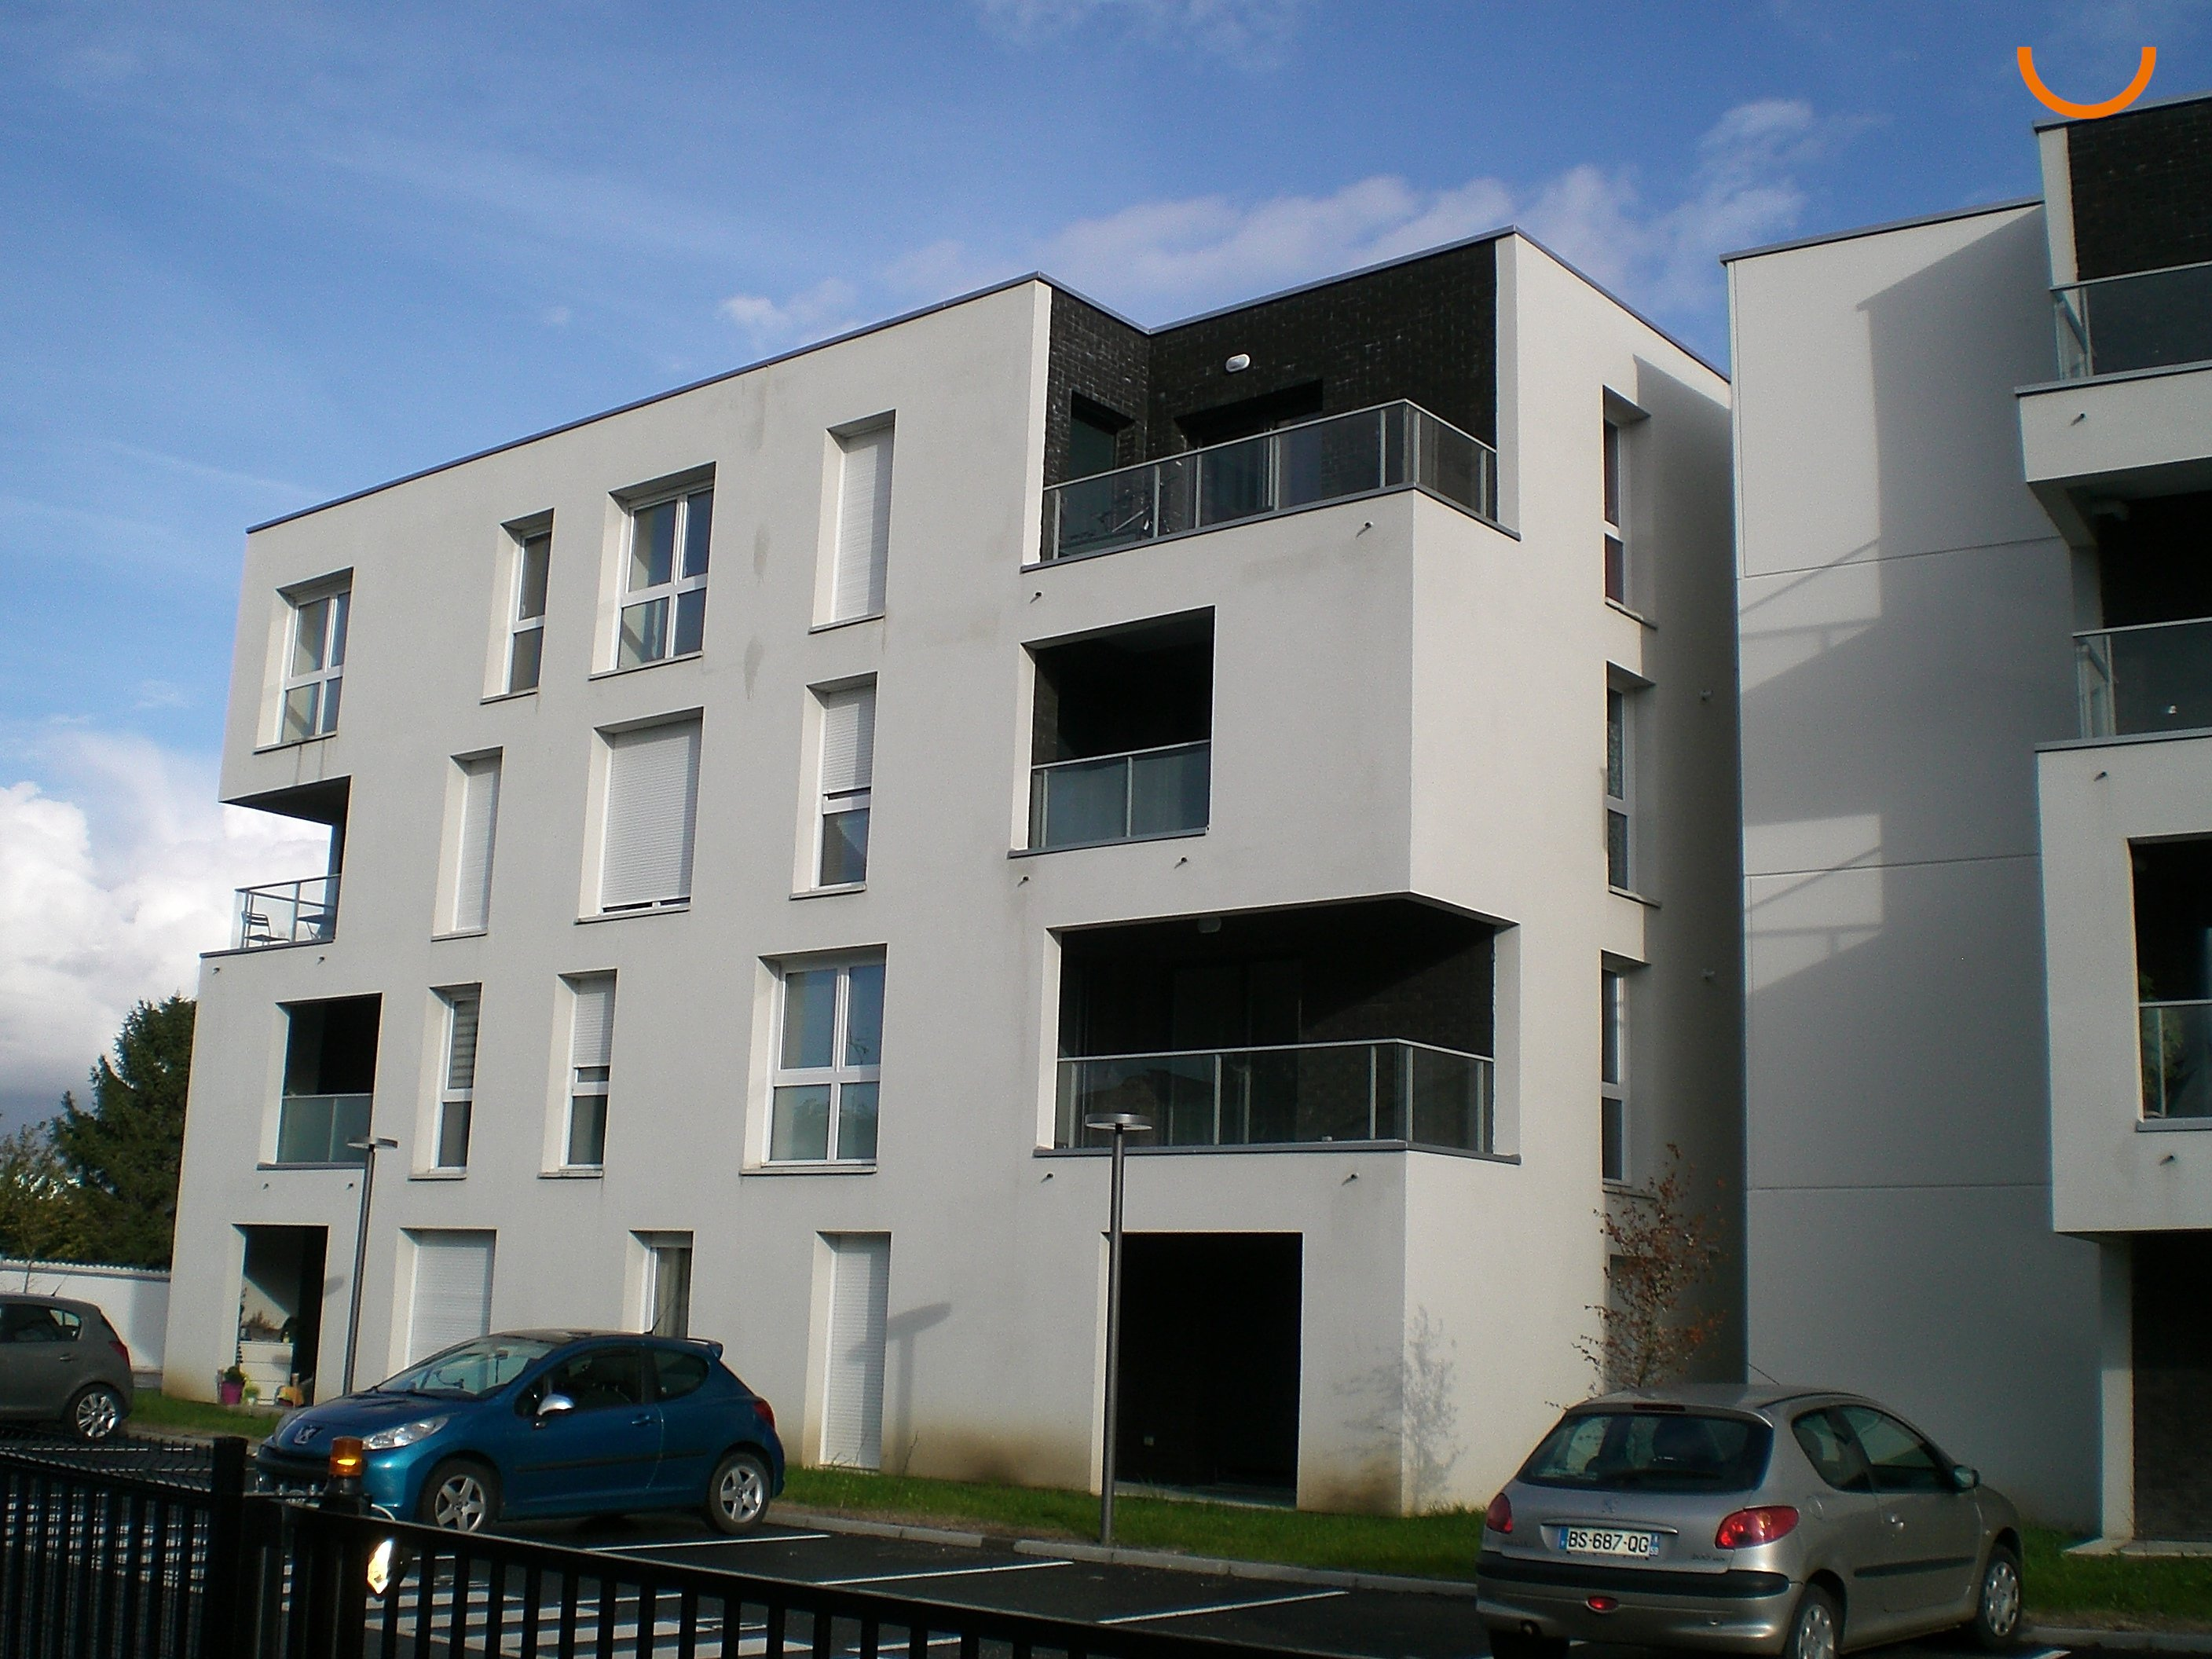 Location Faches-Thumesnil, appartement, 79.9m²